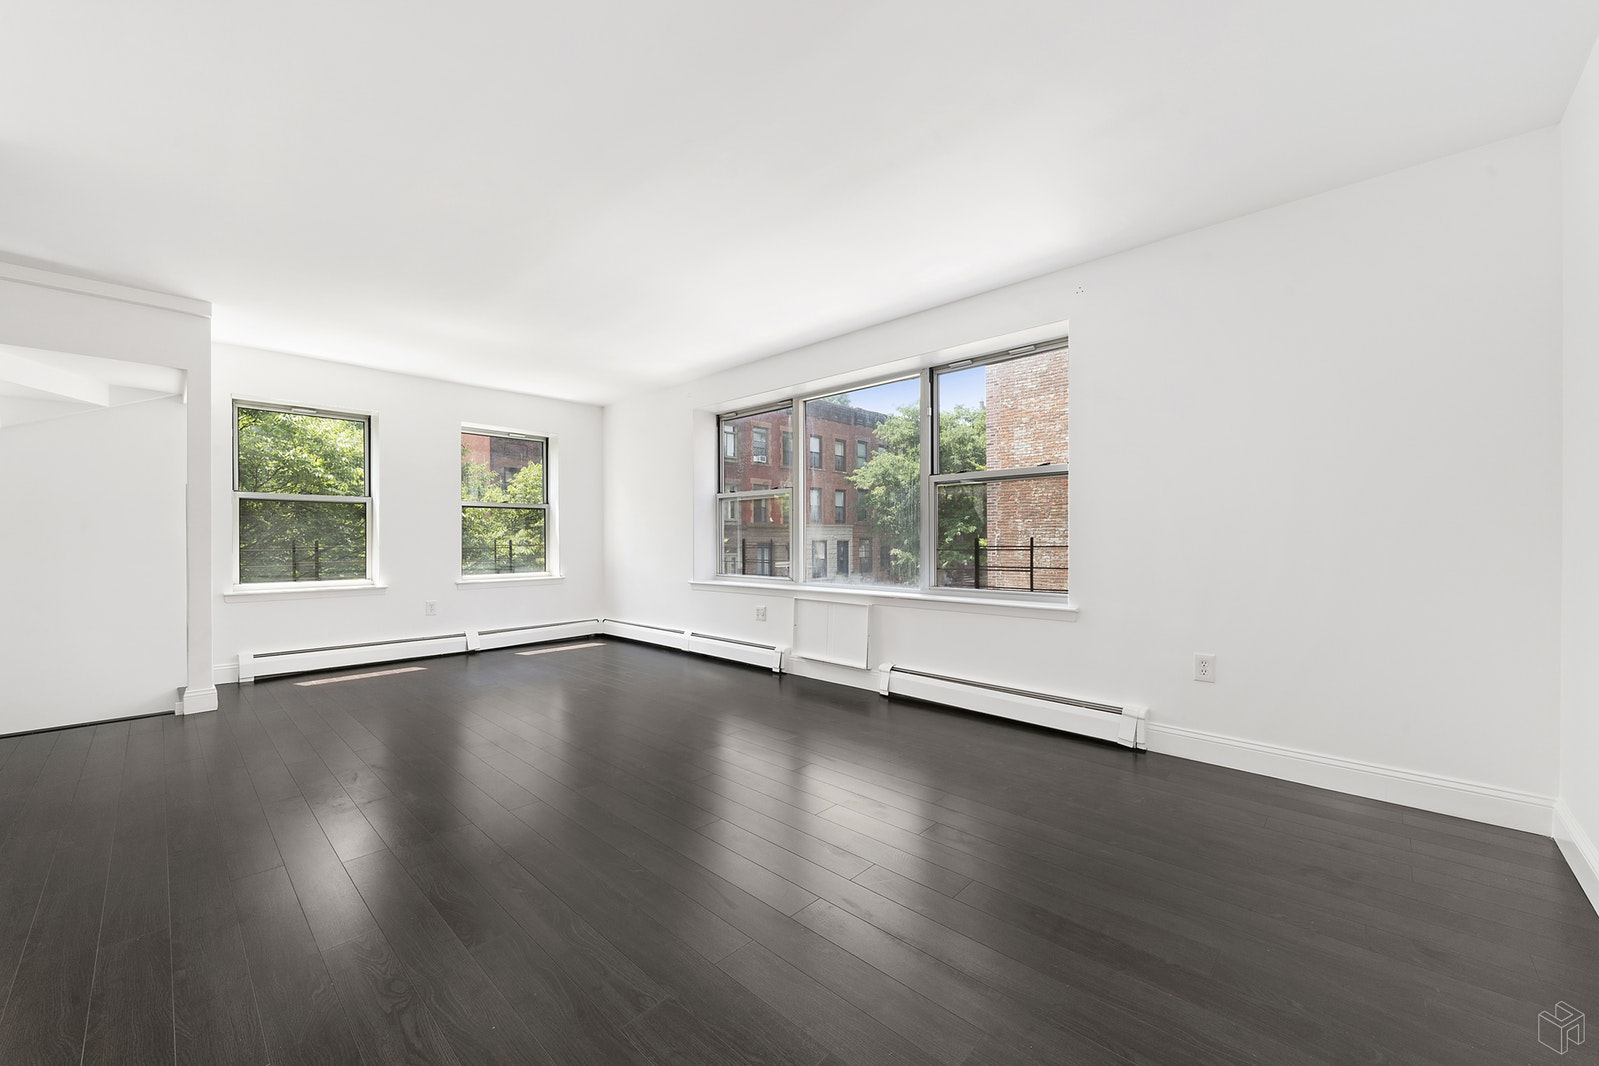 H-U-G-E 3 Br W/ Ultra Low CC'S & Taxes, Upper Manhattan, NYC, 10030, $1,249,000, Property For Sale, Halstead Real Estate, Photo 4